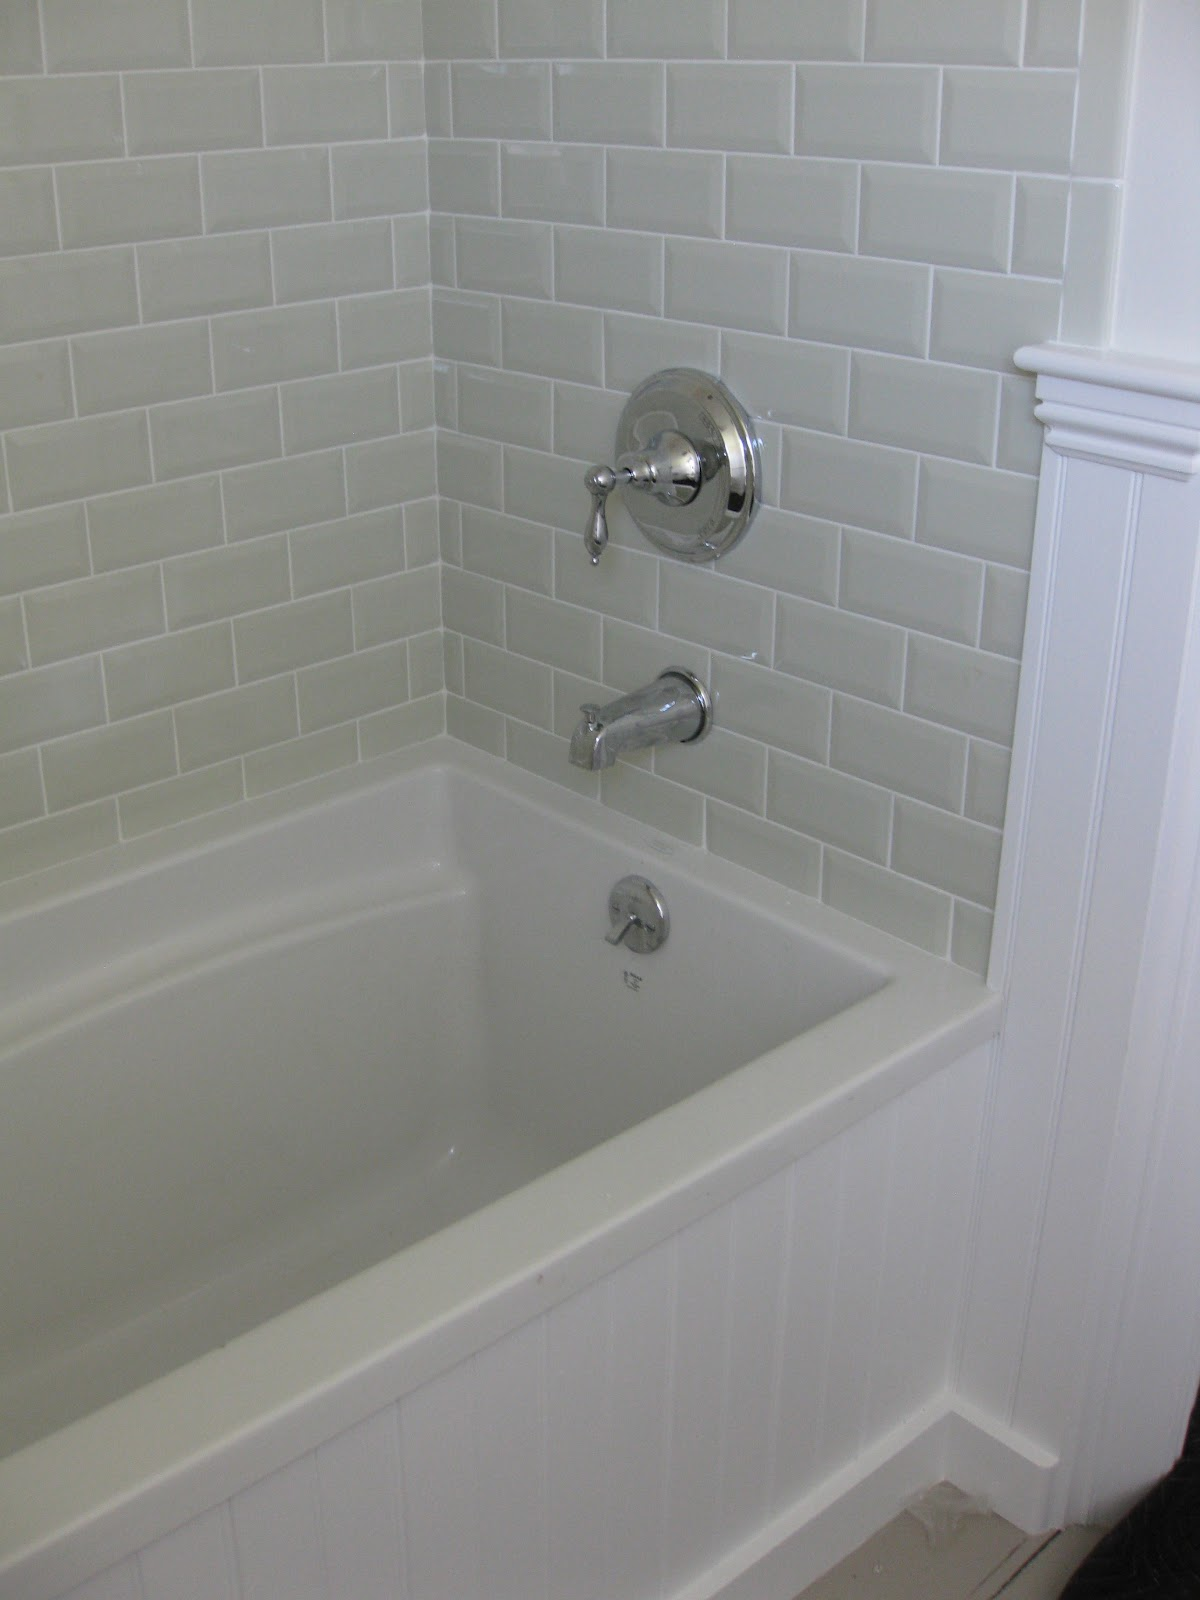 Lily 39 s house a completed project - Bathtub showers for small bathrooms ...